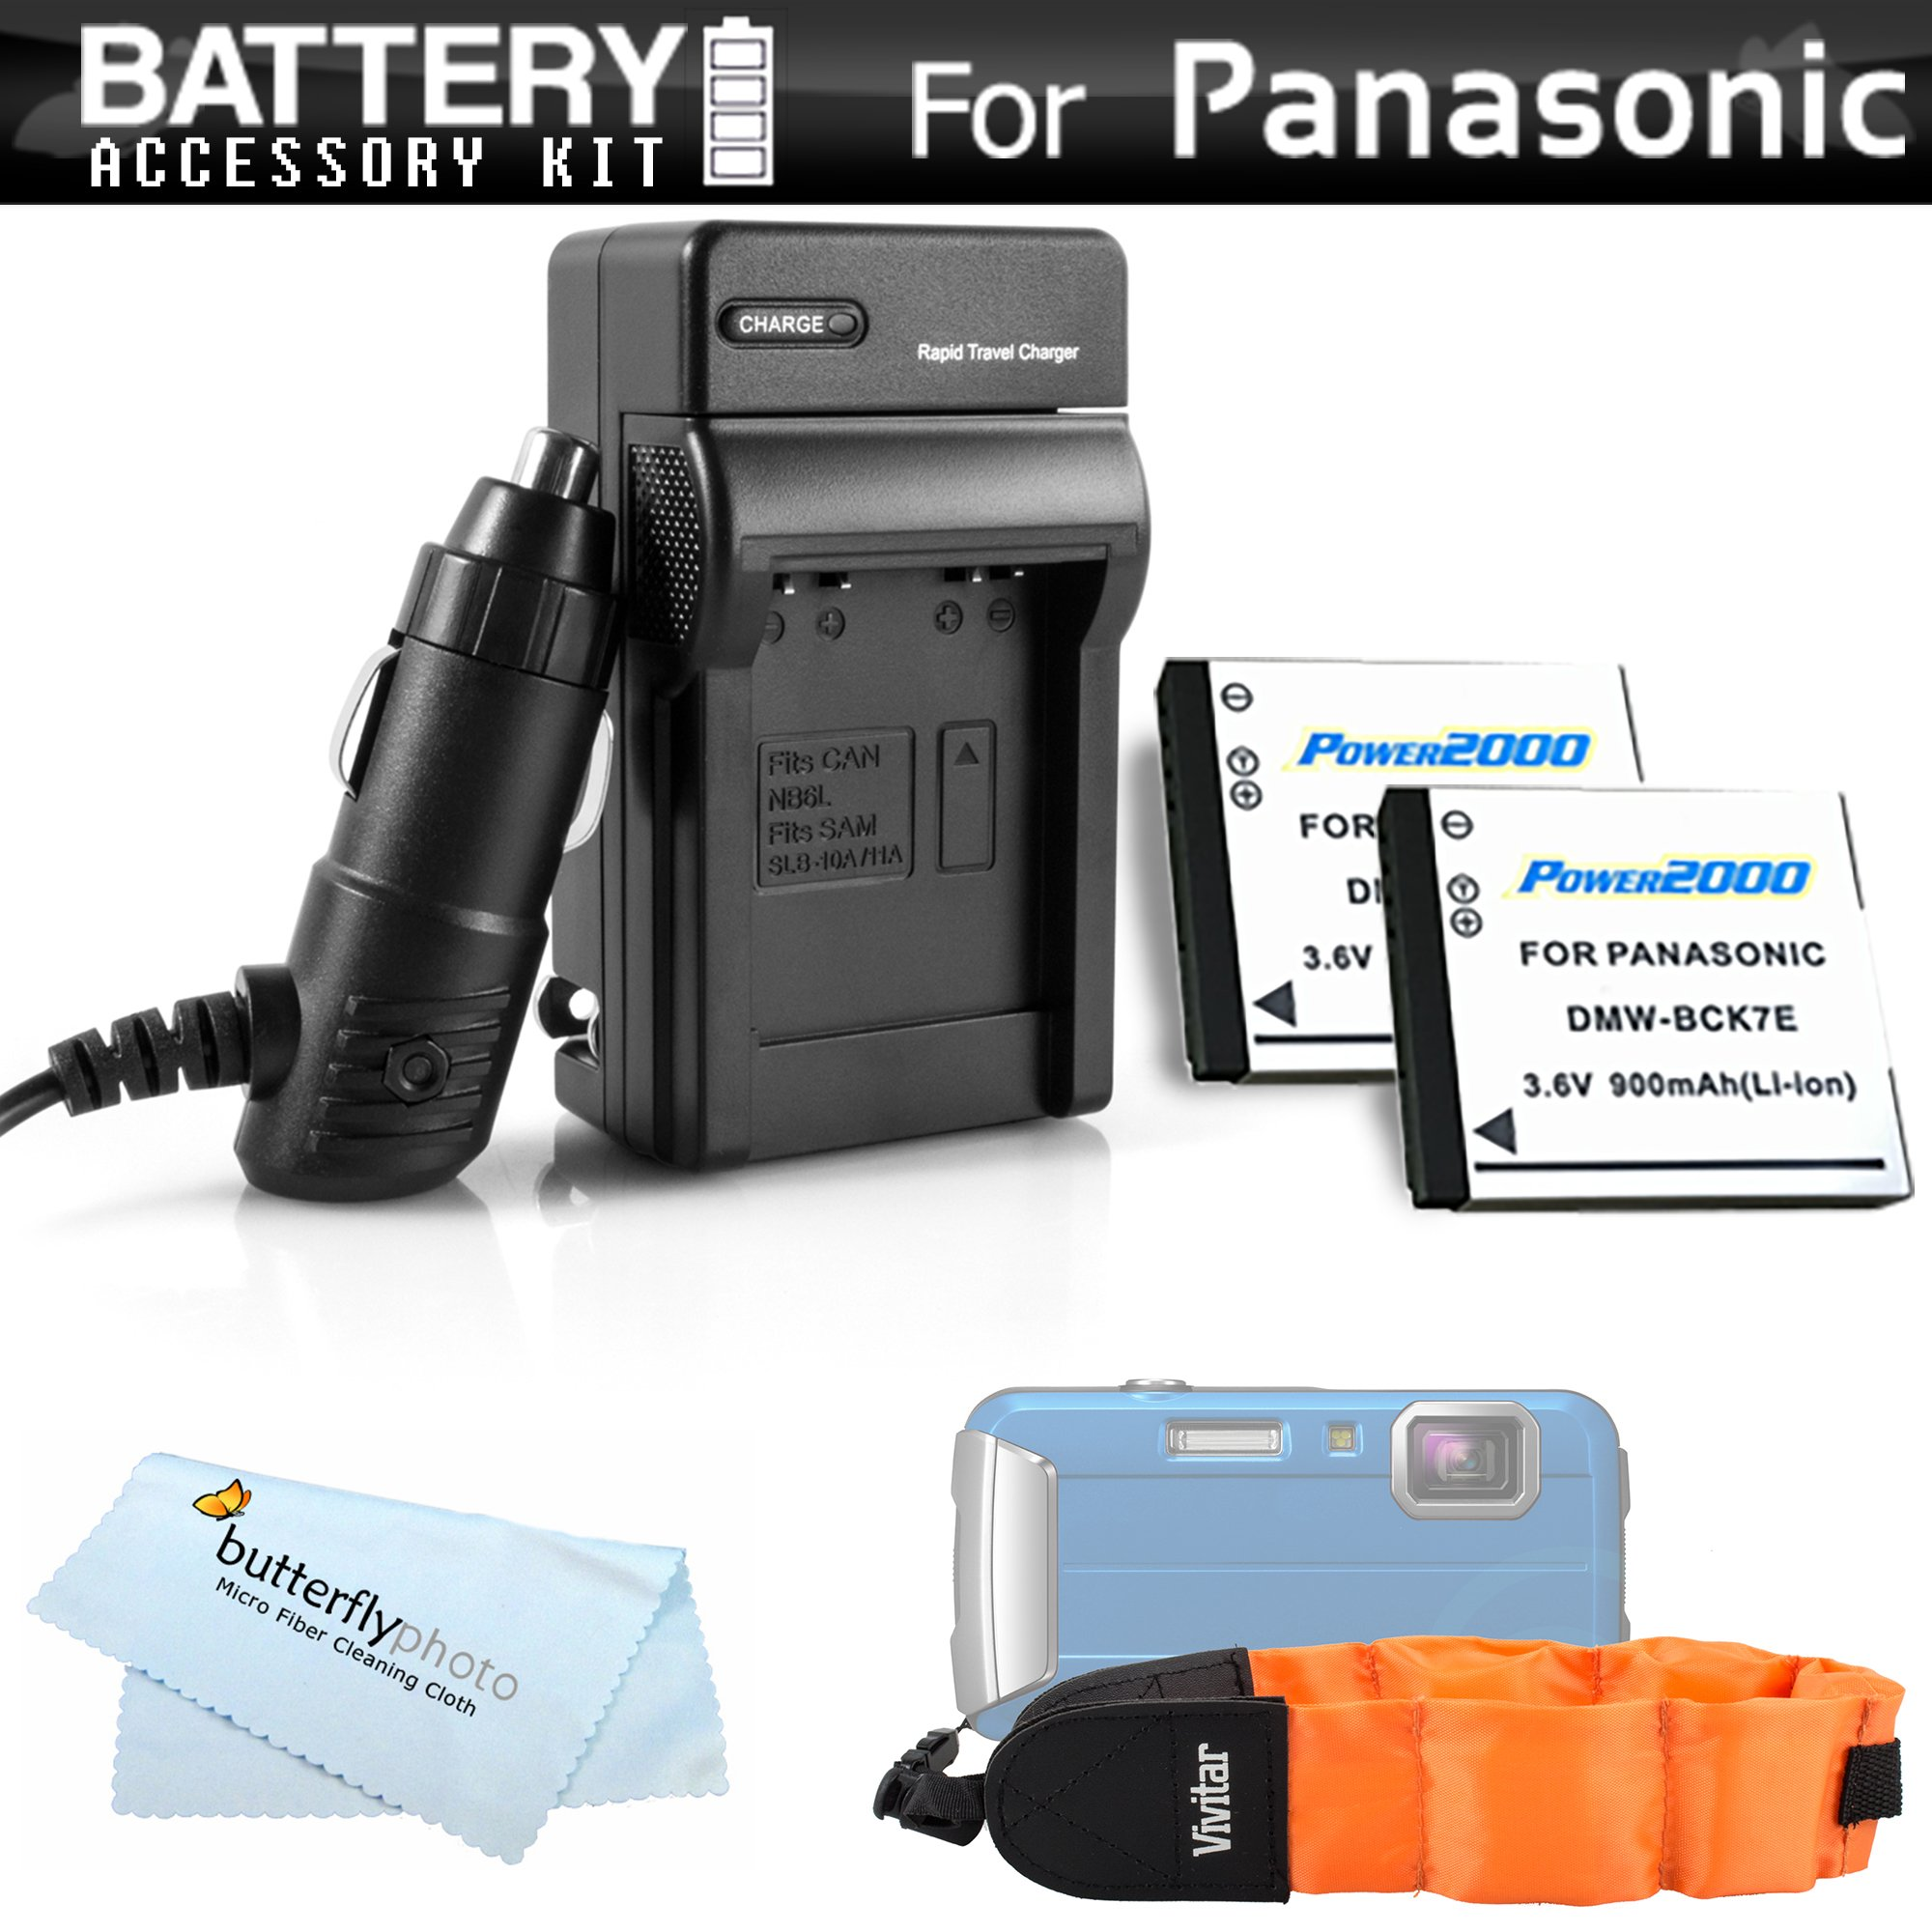 2 Pack Battery And Charger Kit For Panasonic Lumix DMC-TS25, DMC-TS20, DMC-TS30 WaterProof Digital Camera Includes 2 Extended Replacement (900Mah) DMW-BCK7 Batteries + Ac/Dc Rapid Travel Charger + Floating Strap by ButterflyPhoto (Image #1)